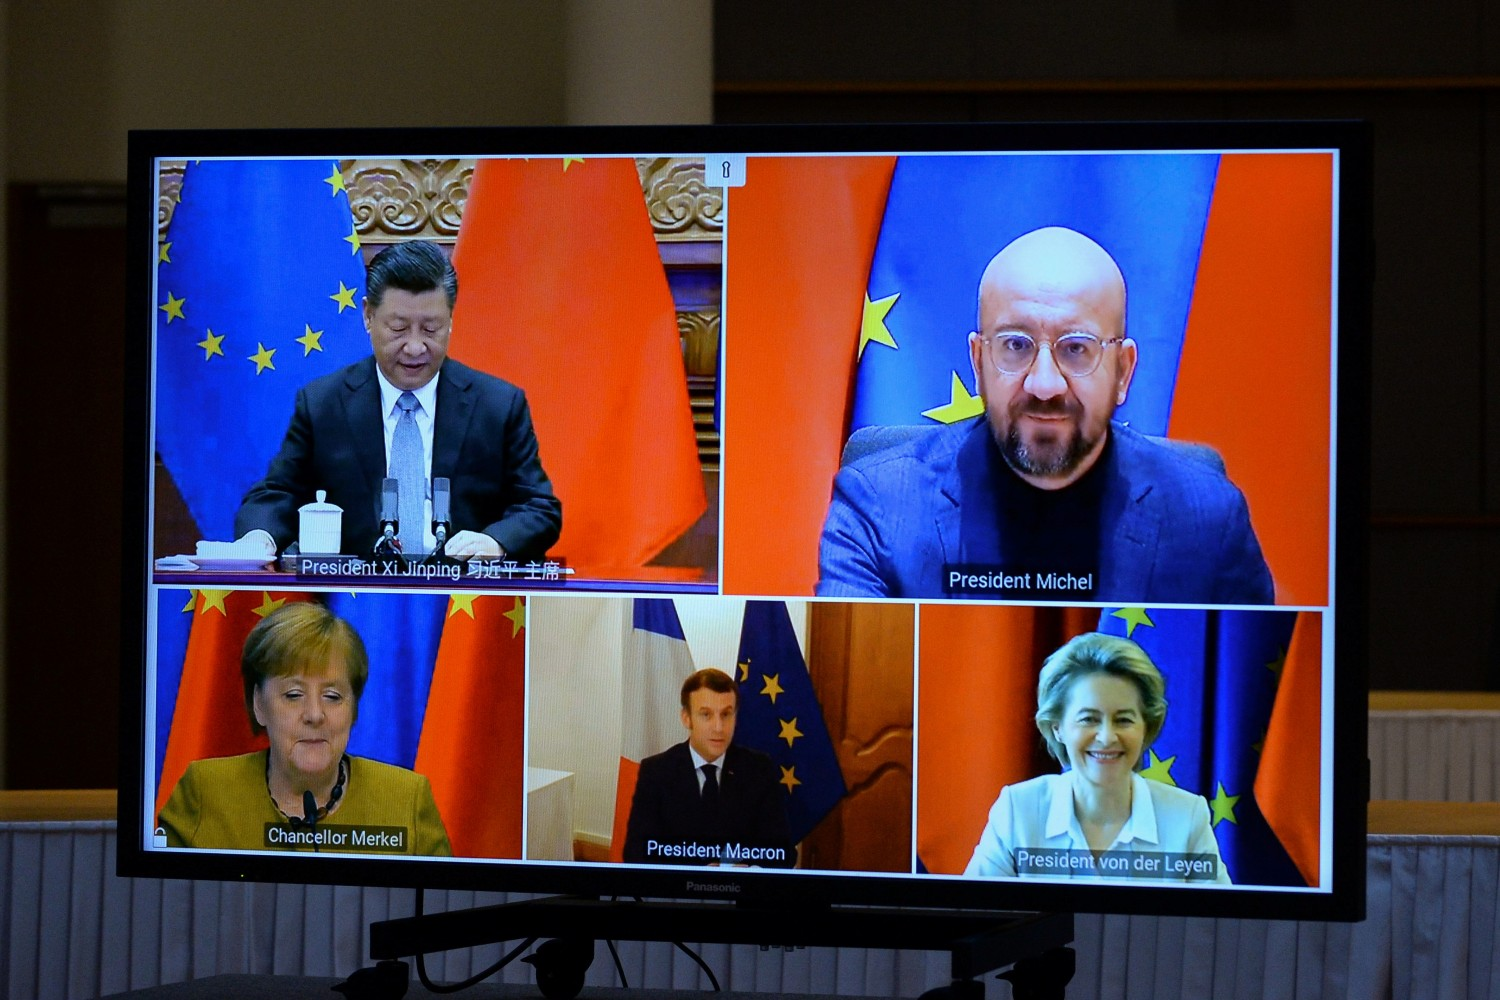 European Commission President Ursula von der Leyen, European Council President Charles Michel, German Chancellor Angela Merkel, French President Emmanuel Macron and Chinese President Xi Jinping are seen on a screen during a video conference, in Brussels, Belgium December 30, 2020. REUTERS/Johanna Geron/Pool/File Photo